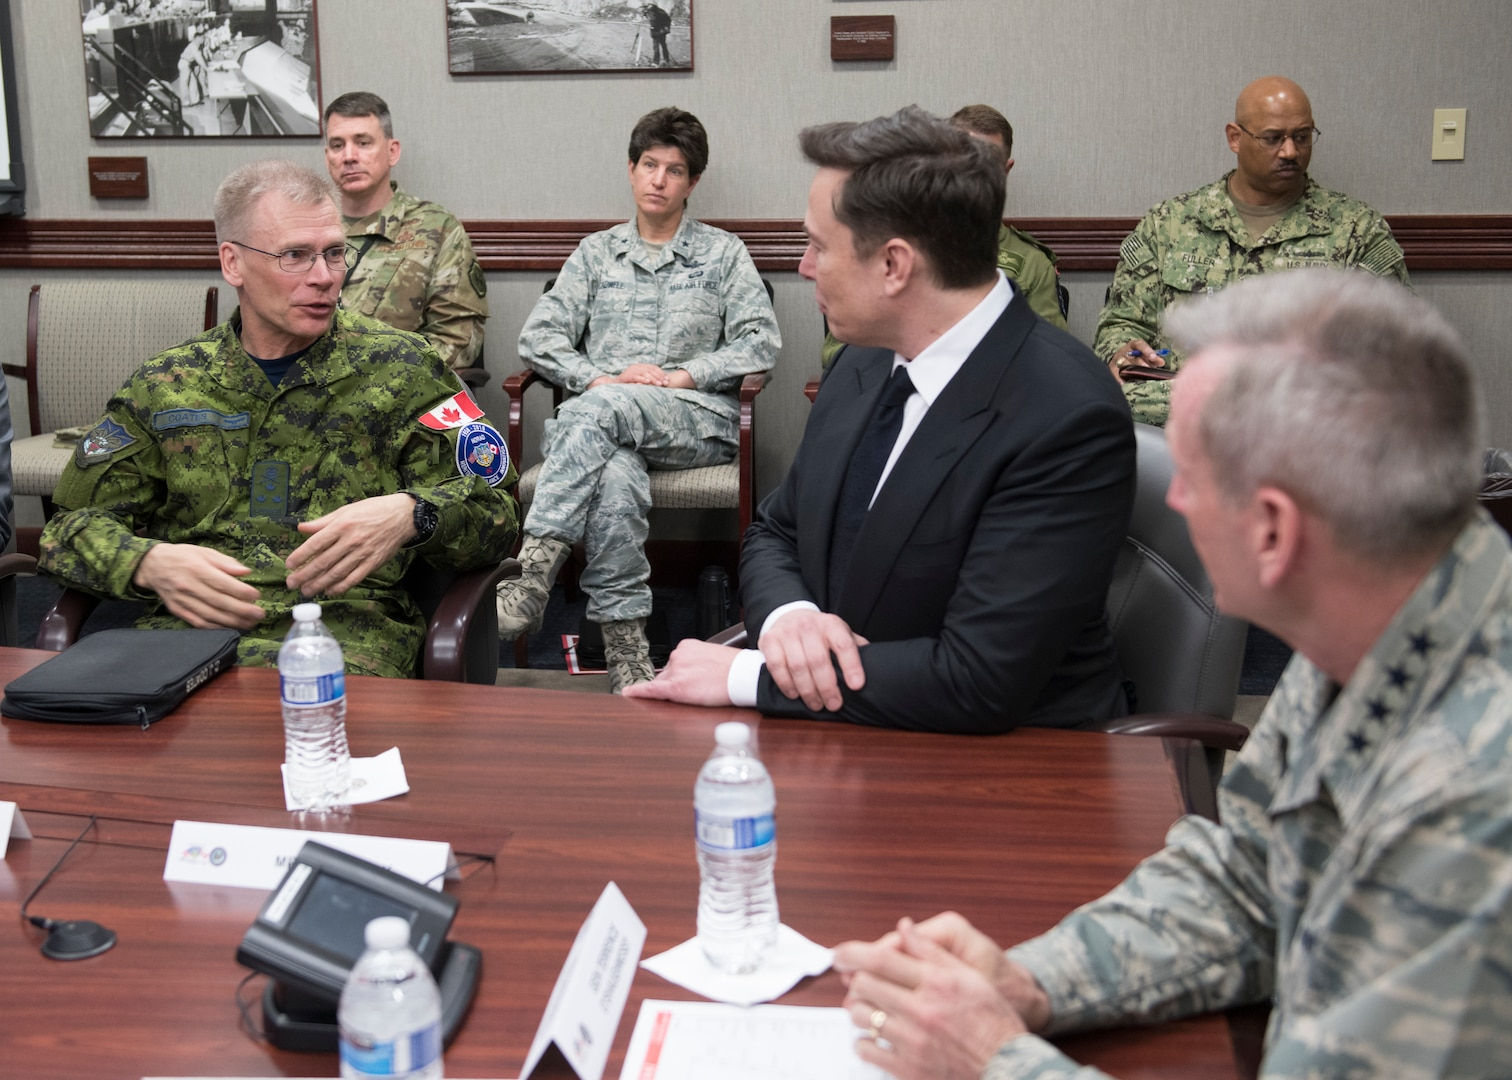 SpaceX CEO Elon Musk discusses U.S. space operations with Royal Canadian Air Force Lieutenant General Christopher Coates, the North American Aerospace Defense Command Deputy Commander and U.S. Air Force General Terrence O'Shaughnessy, the Commander of NORAD and U.S. Northern Command, April 15, 2019. During Musk's visit to Colorado Springs, Colorado he participated in conversations and round table briefings about future space operations and homeland defense innovation.